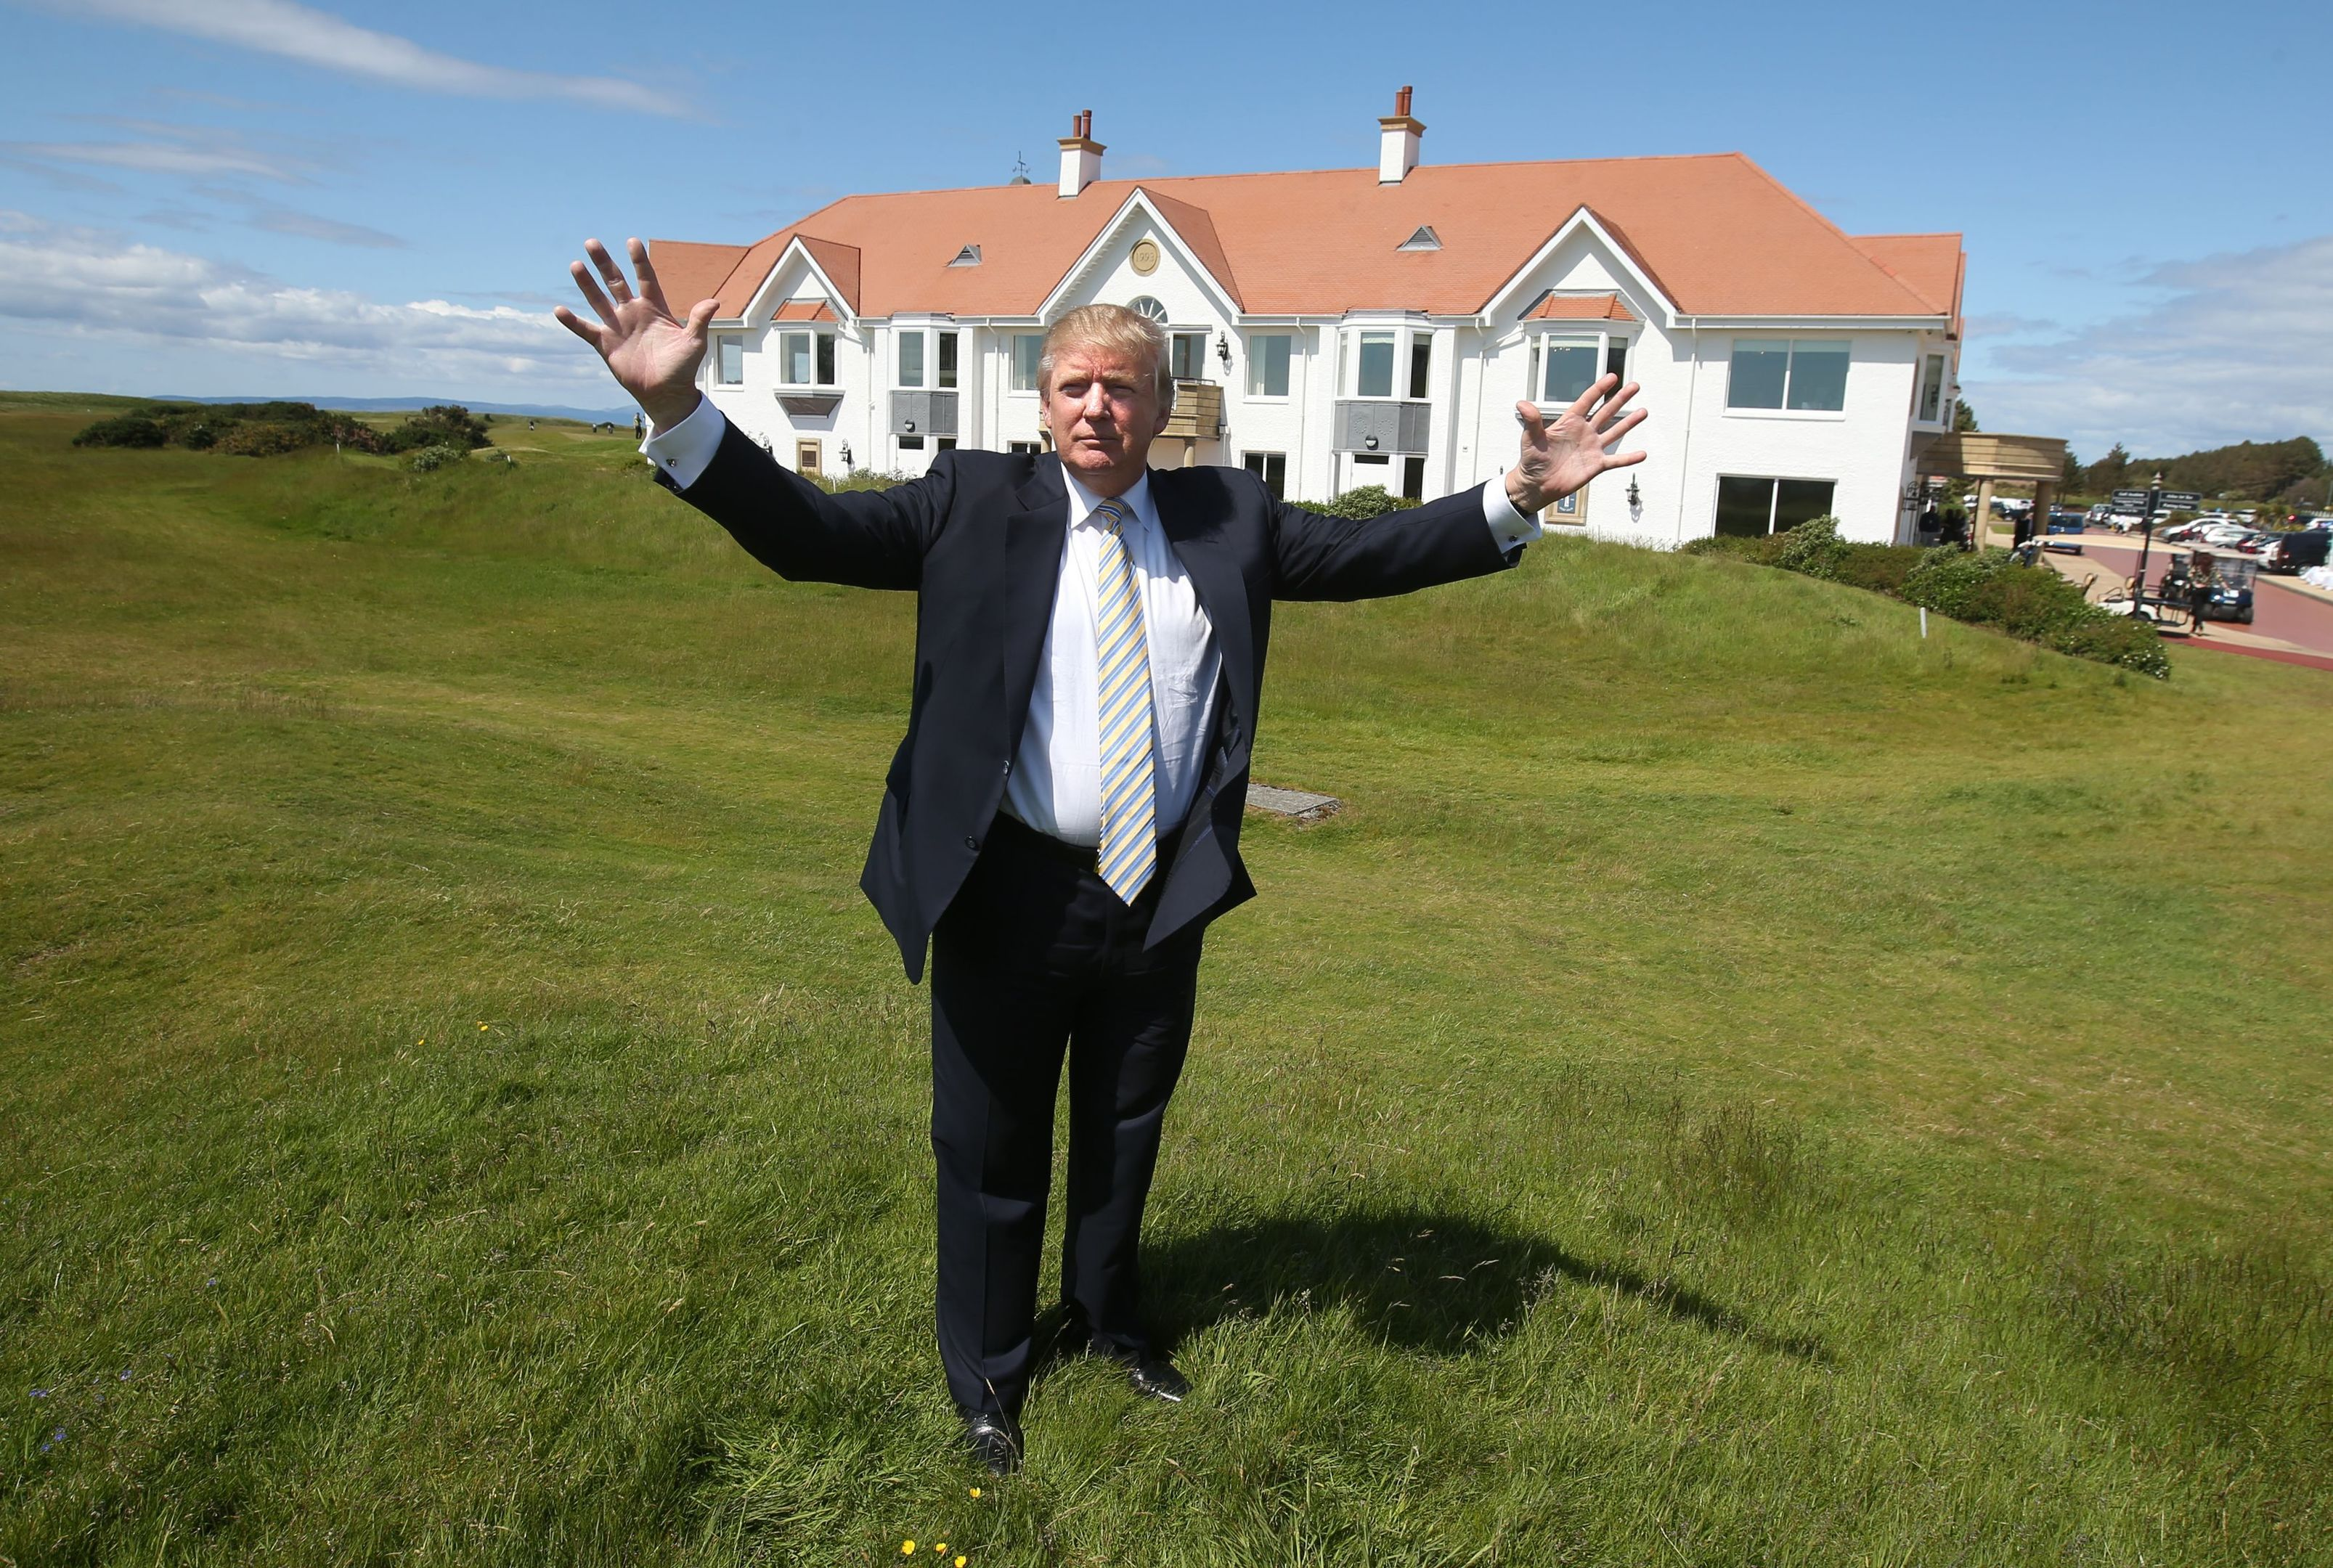 Donald Trump poses after unveiling the multi-million pound refurbishment of the Trump Turnberry clubhouse.